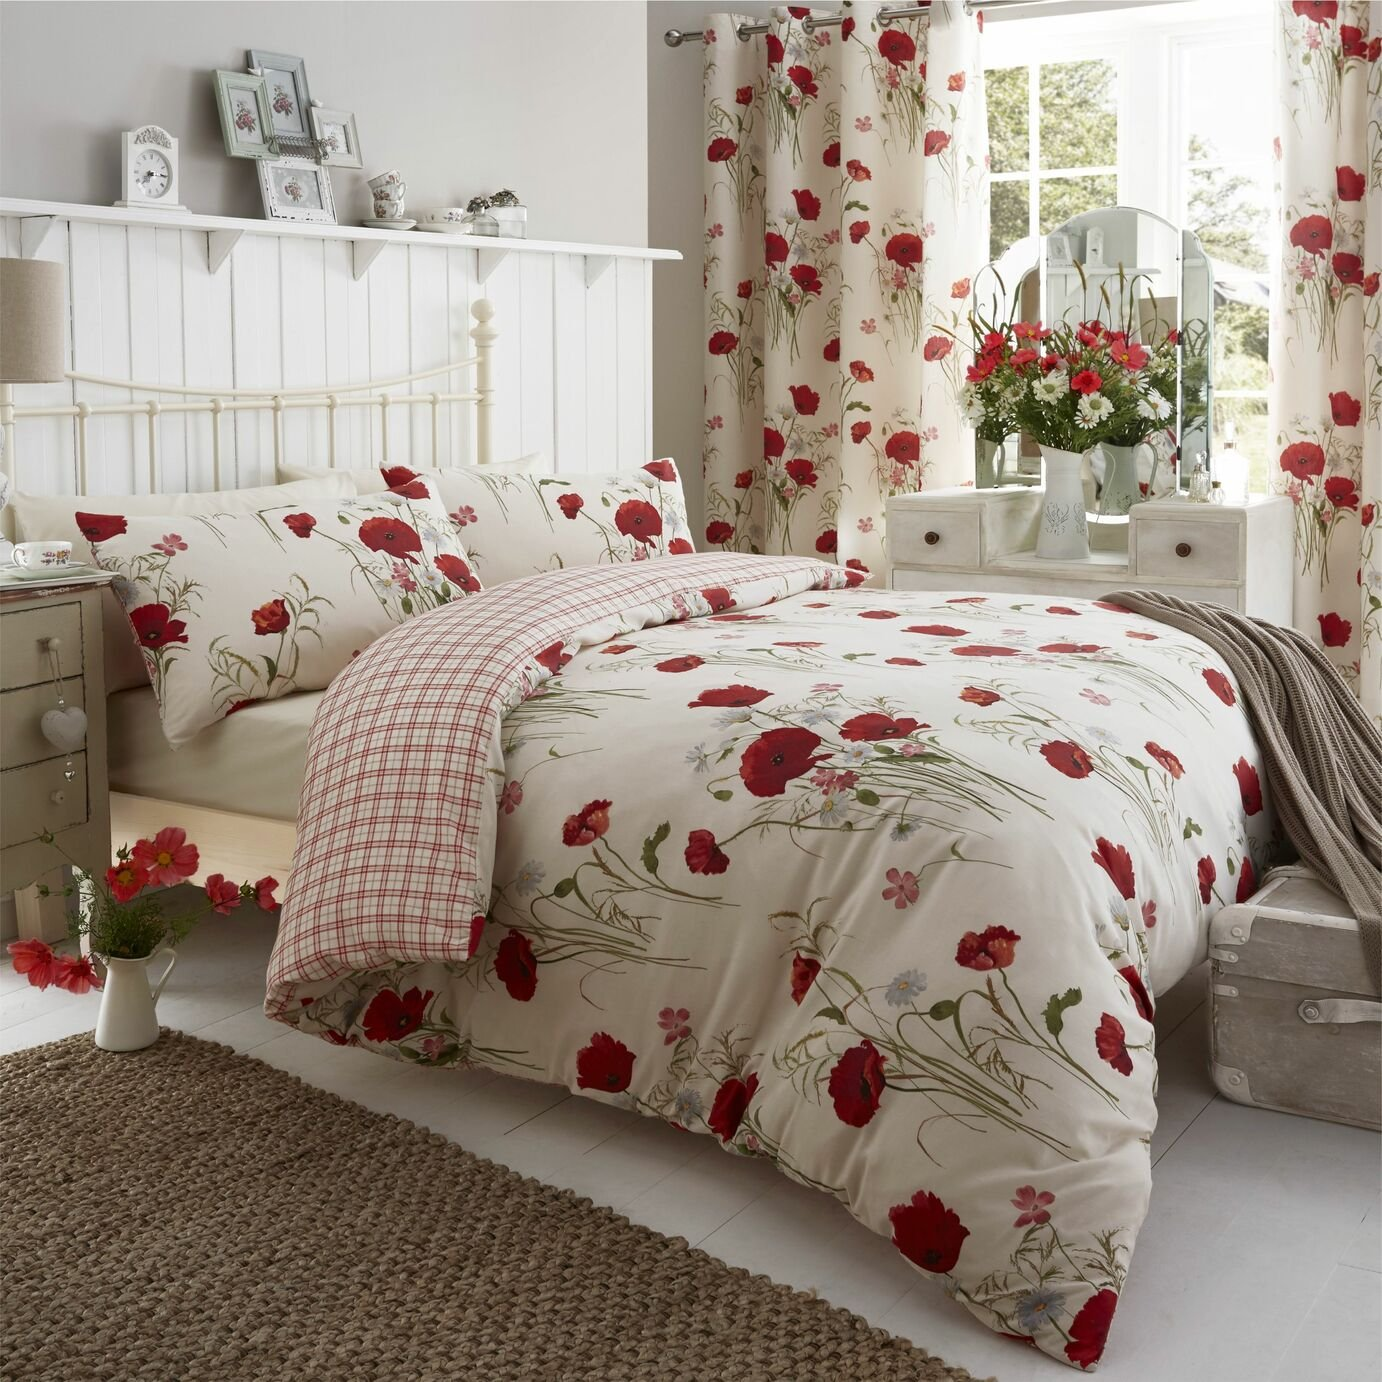 Catherine Lansfield Wild Poppies Duvet Cover Set - Kingsize